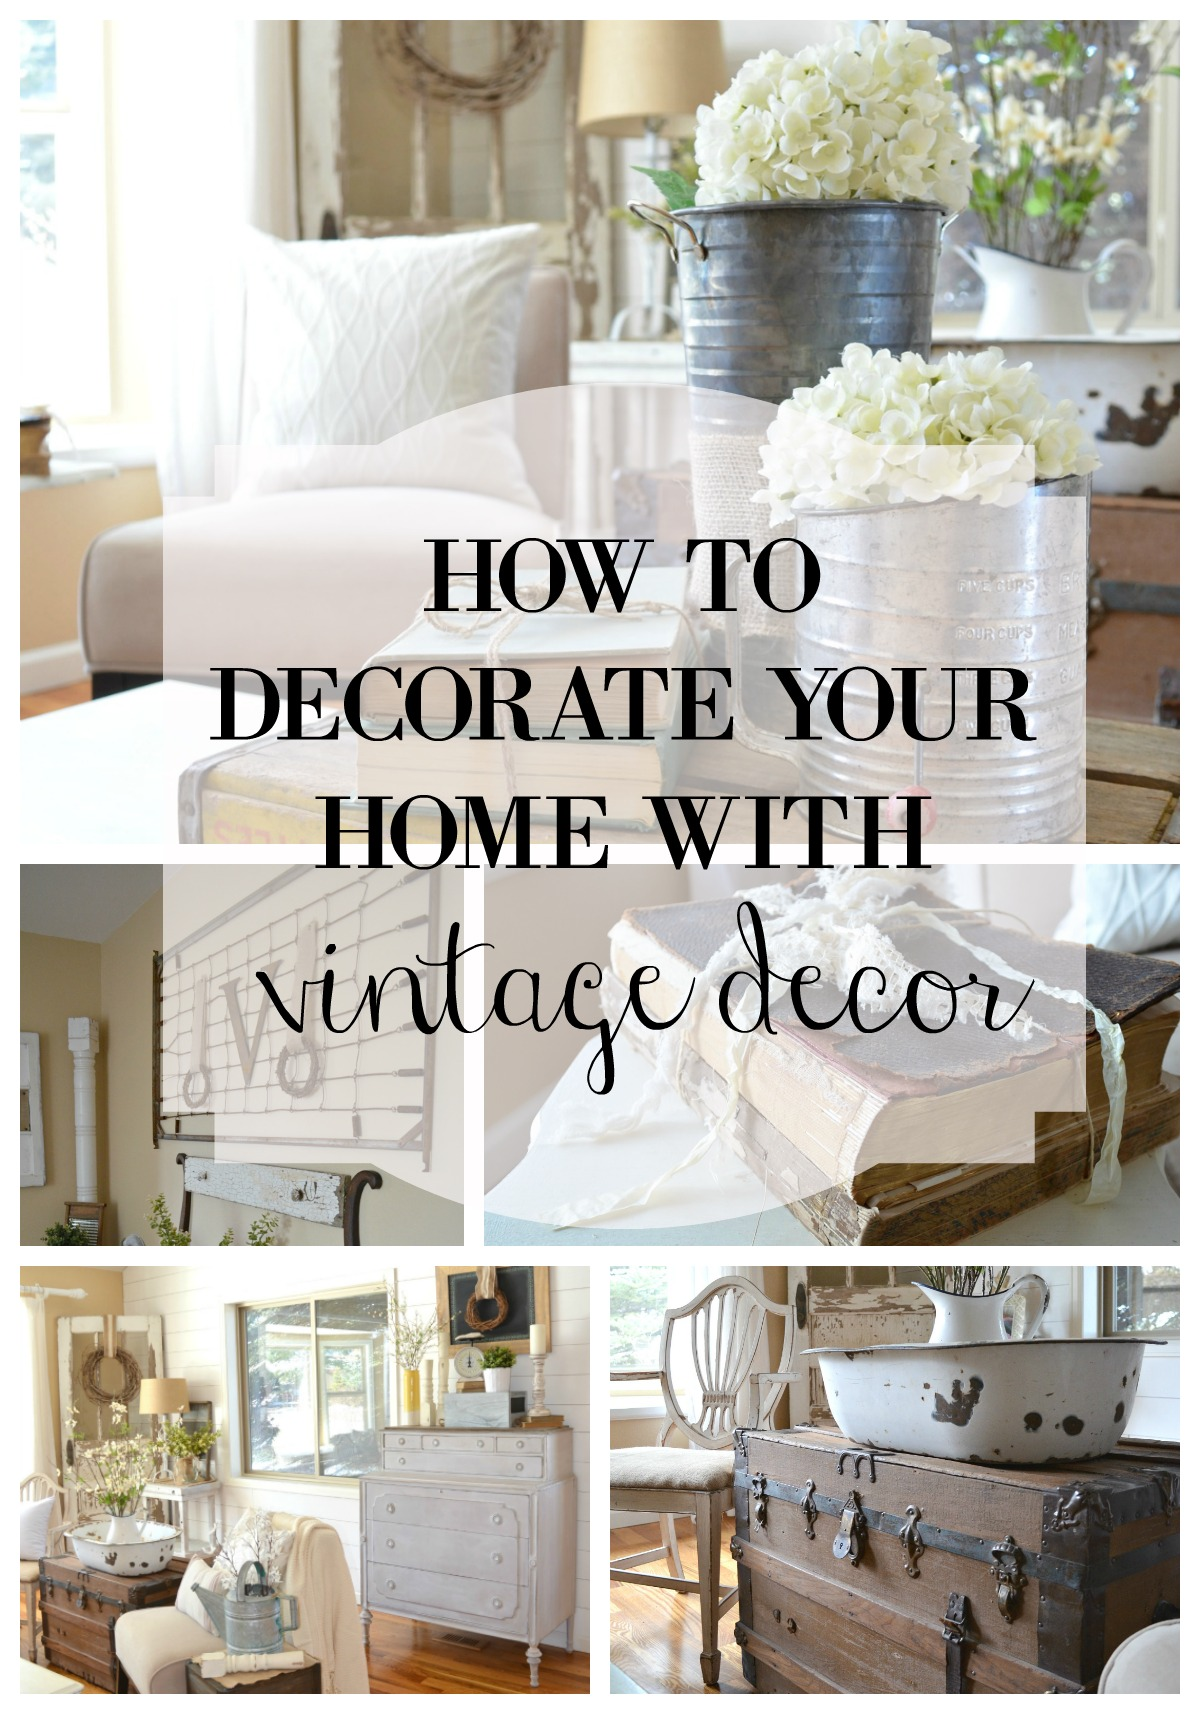 How to decorate with vintage decor little vintage nest How to decorate ur house